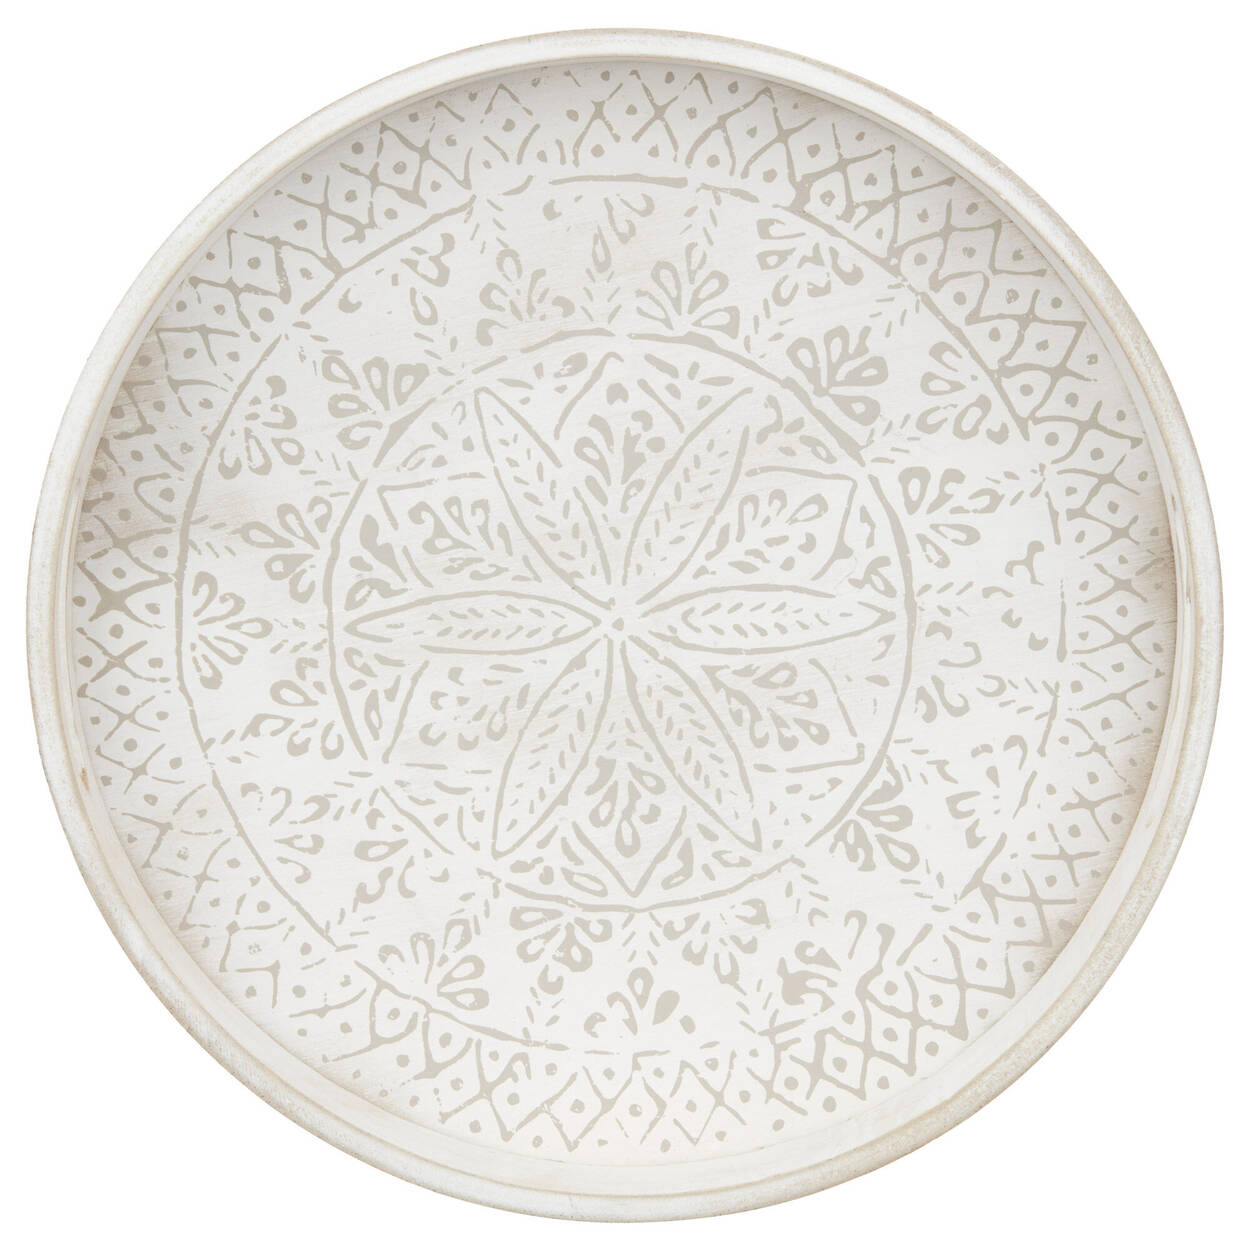 Round Patterned Wood Tray